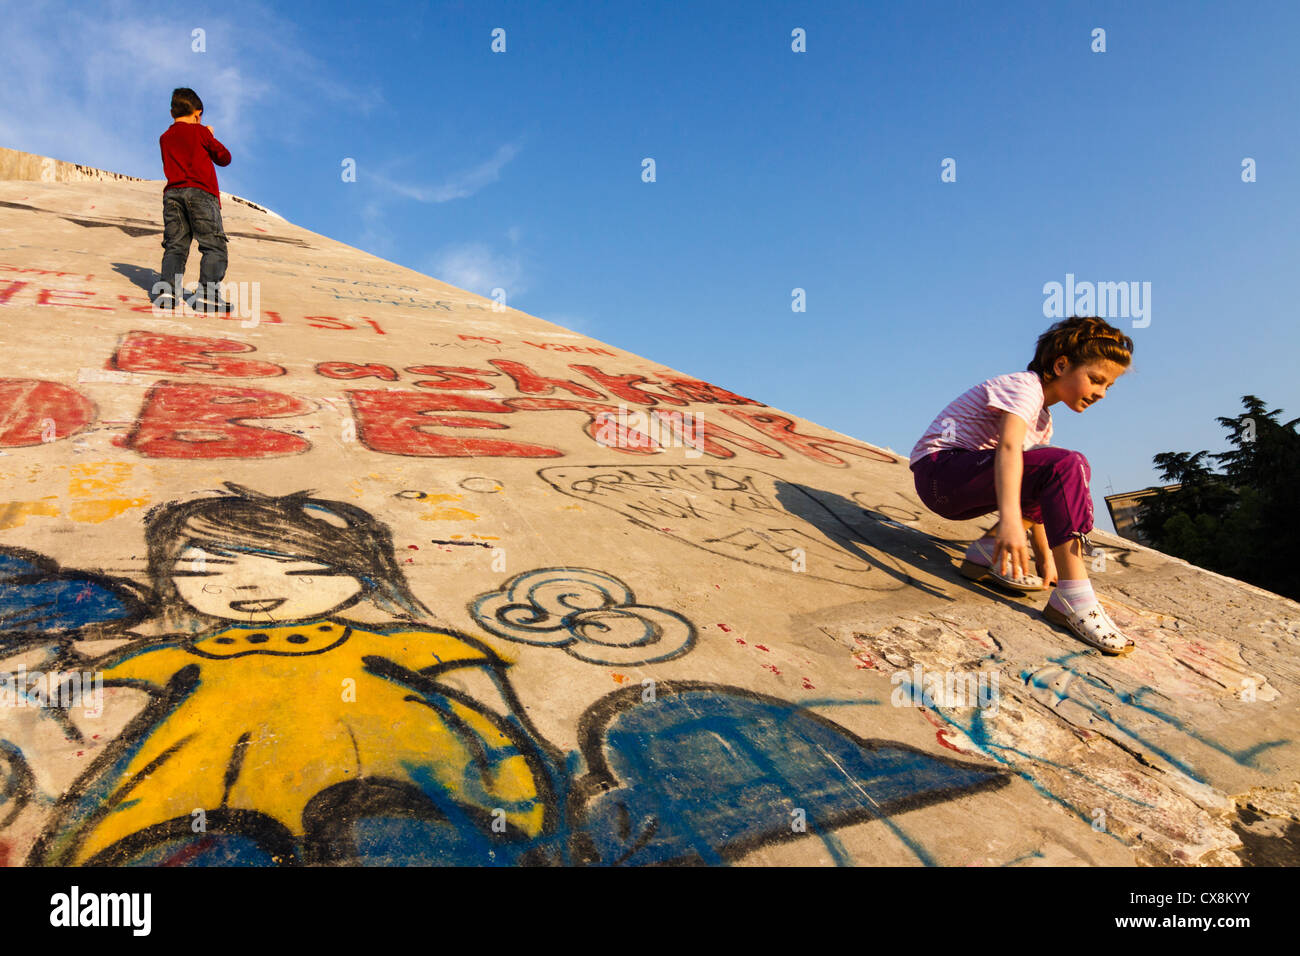 Children climbing up the Pyramid, the former International Center of Culture. Tirana, Alban - Stock Image